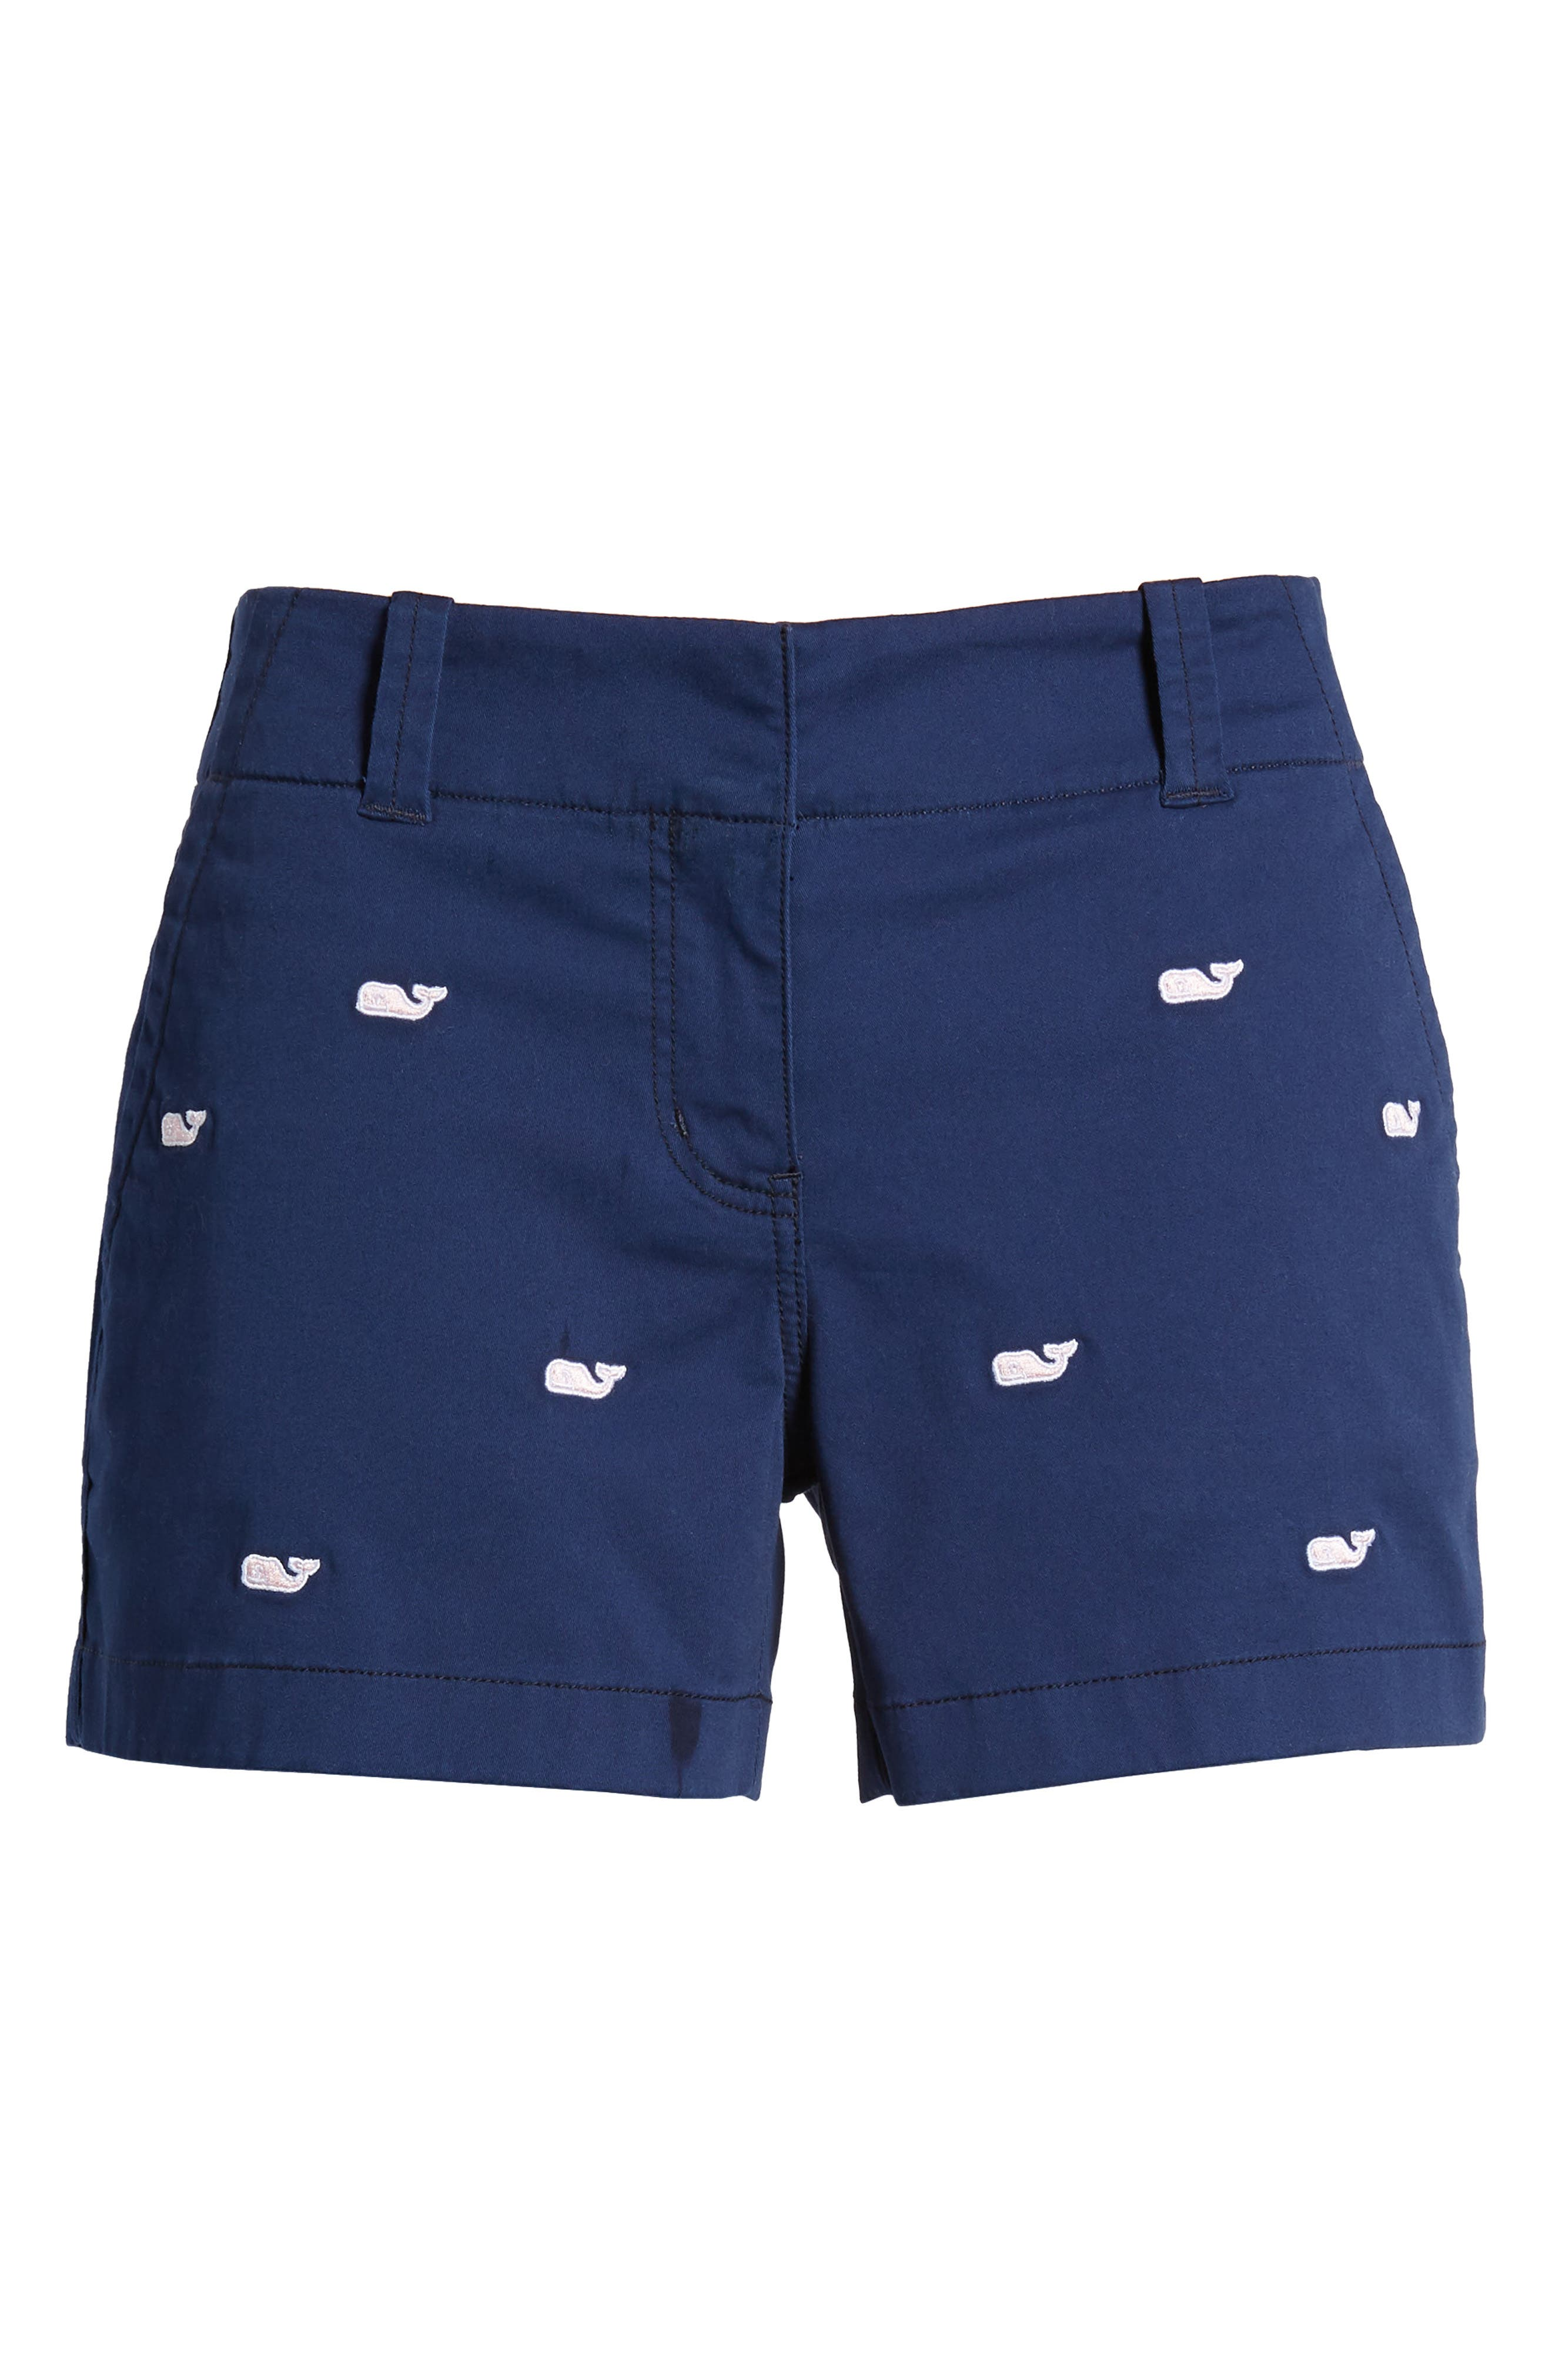 Whale Embroidered Chino Shorts,                             Alternate thumbnail 6, color,                             Deep Bay